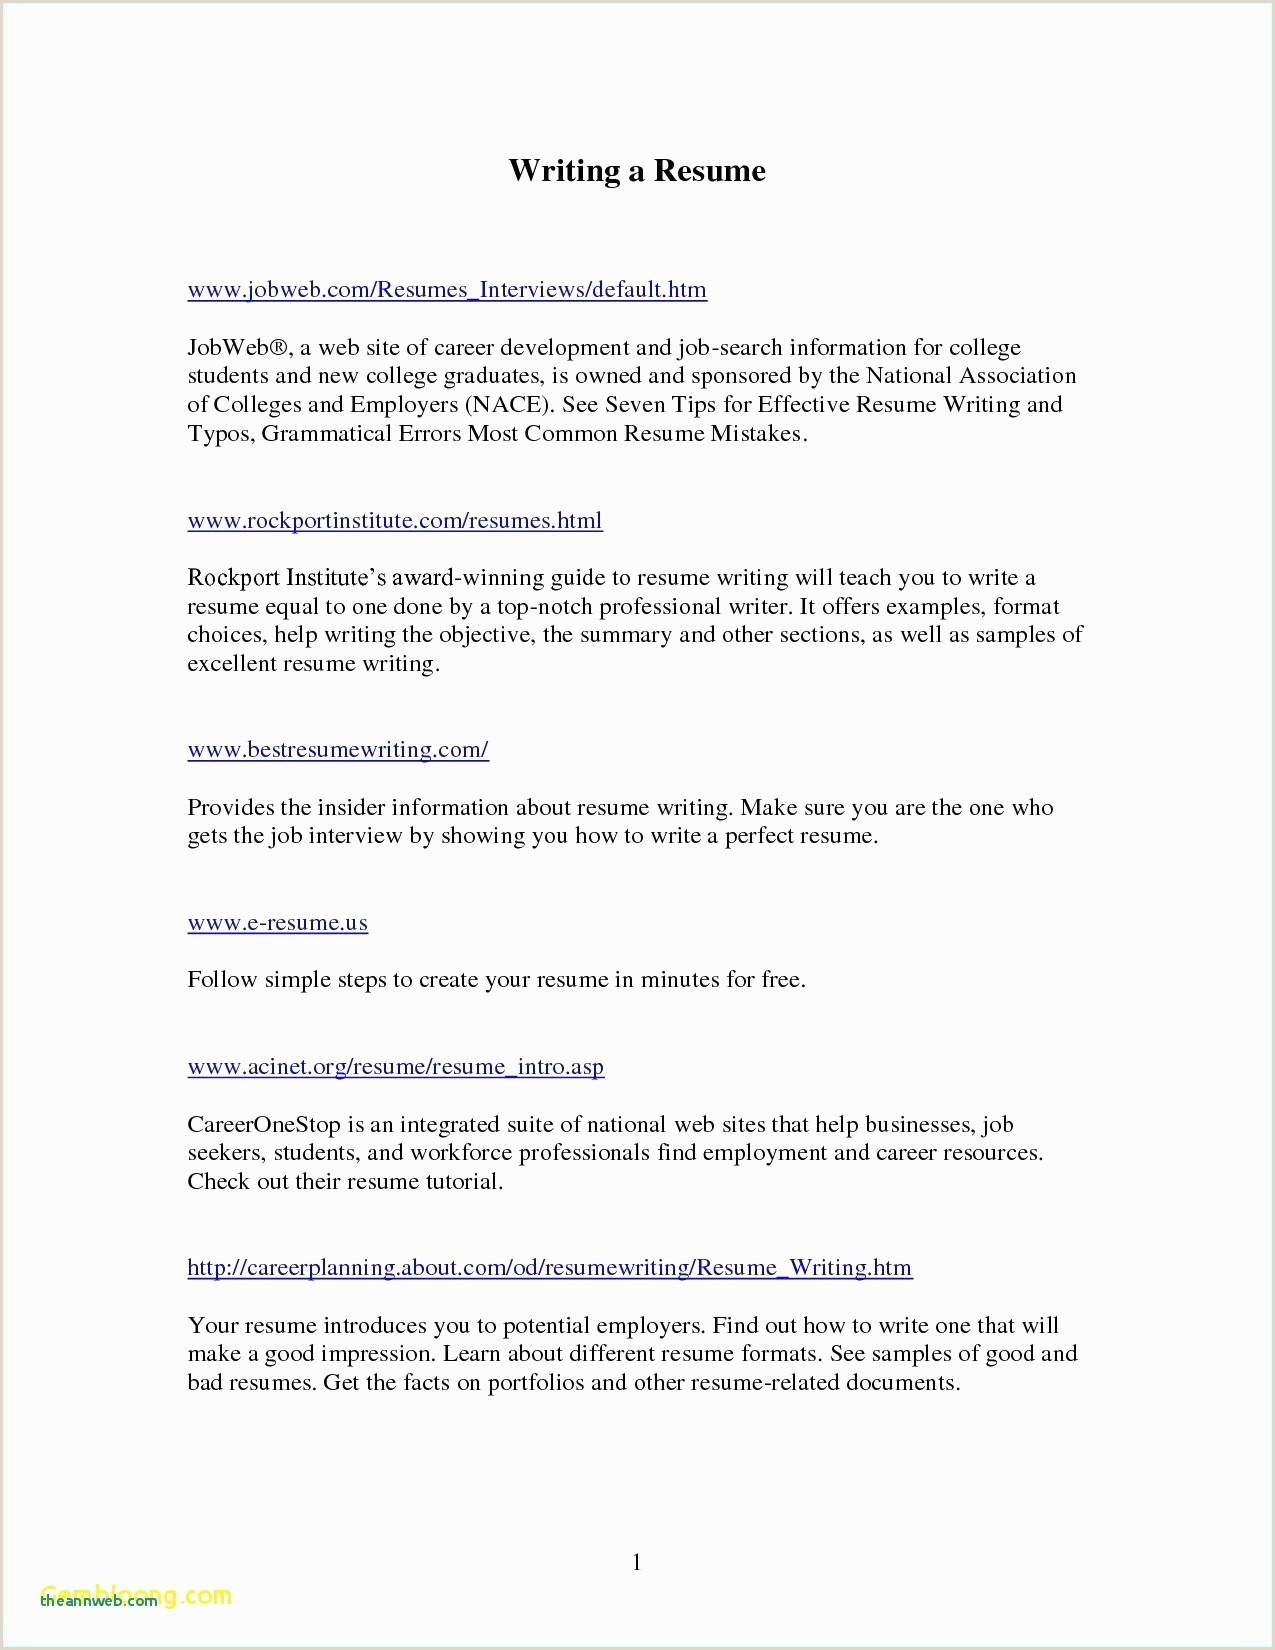 Fresher Cv format In Word Resume Pdf Free Download Ultimateamples for Freshers Chef